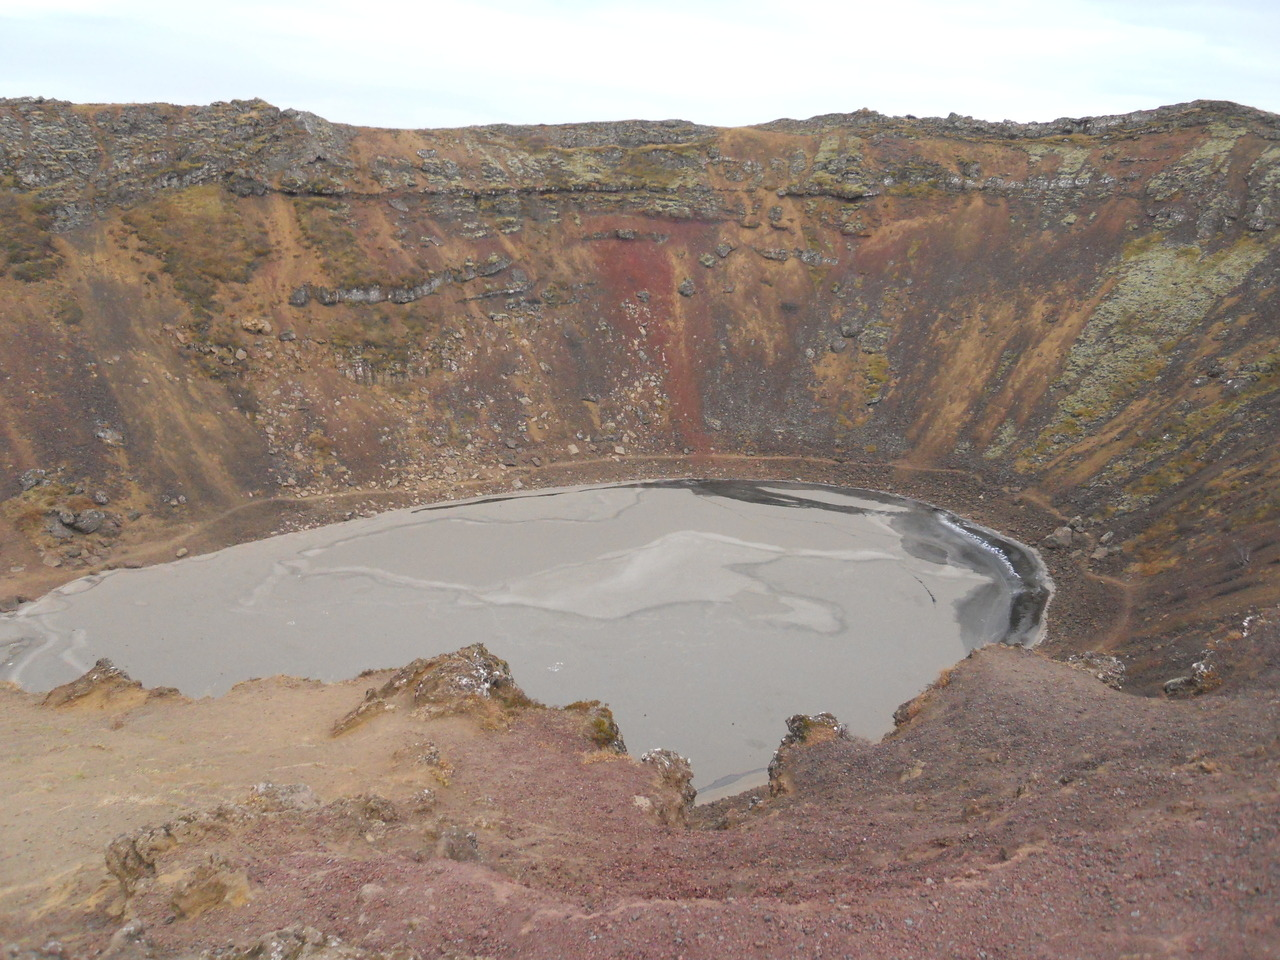 Today we visited a massive crater just down the road from Solheimar, which formed directly after a volcanic eruption when the volcano caved back into itself due to various geological processes. By peering over the edge, we were actually seeing the mini-caldera of the volcano! Apparently, Icelanders would have concerts at the bottom on the crater in the summer. The artist would float on the water and perform while the audience circled around the outside and watched. That would have been an incredible sight to see!